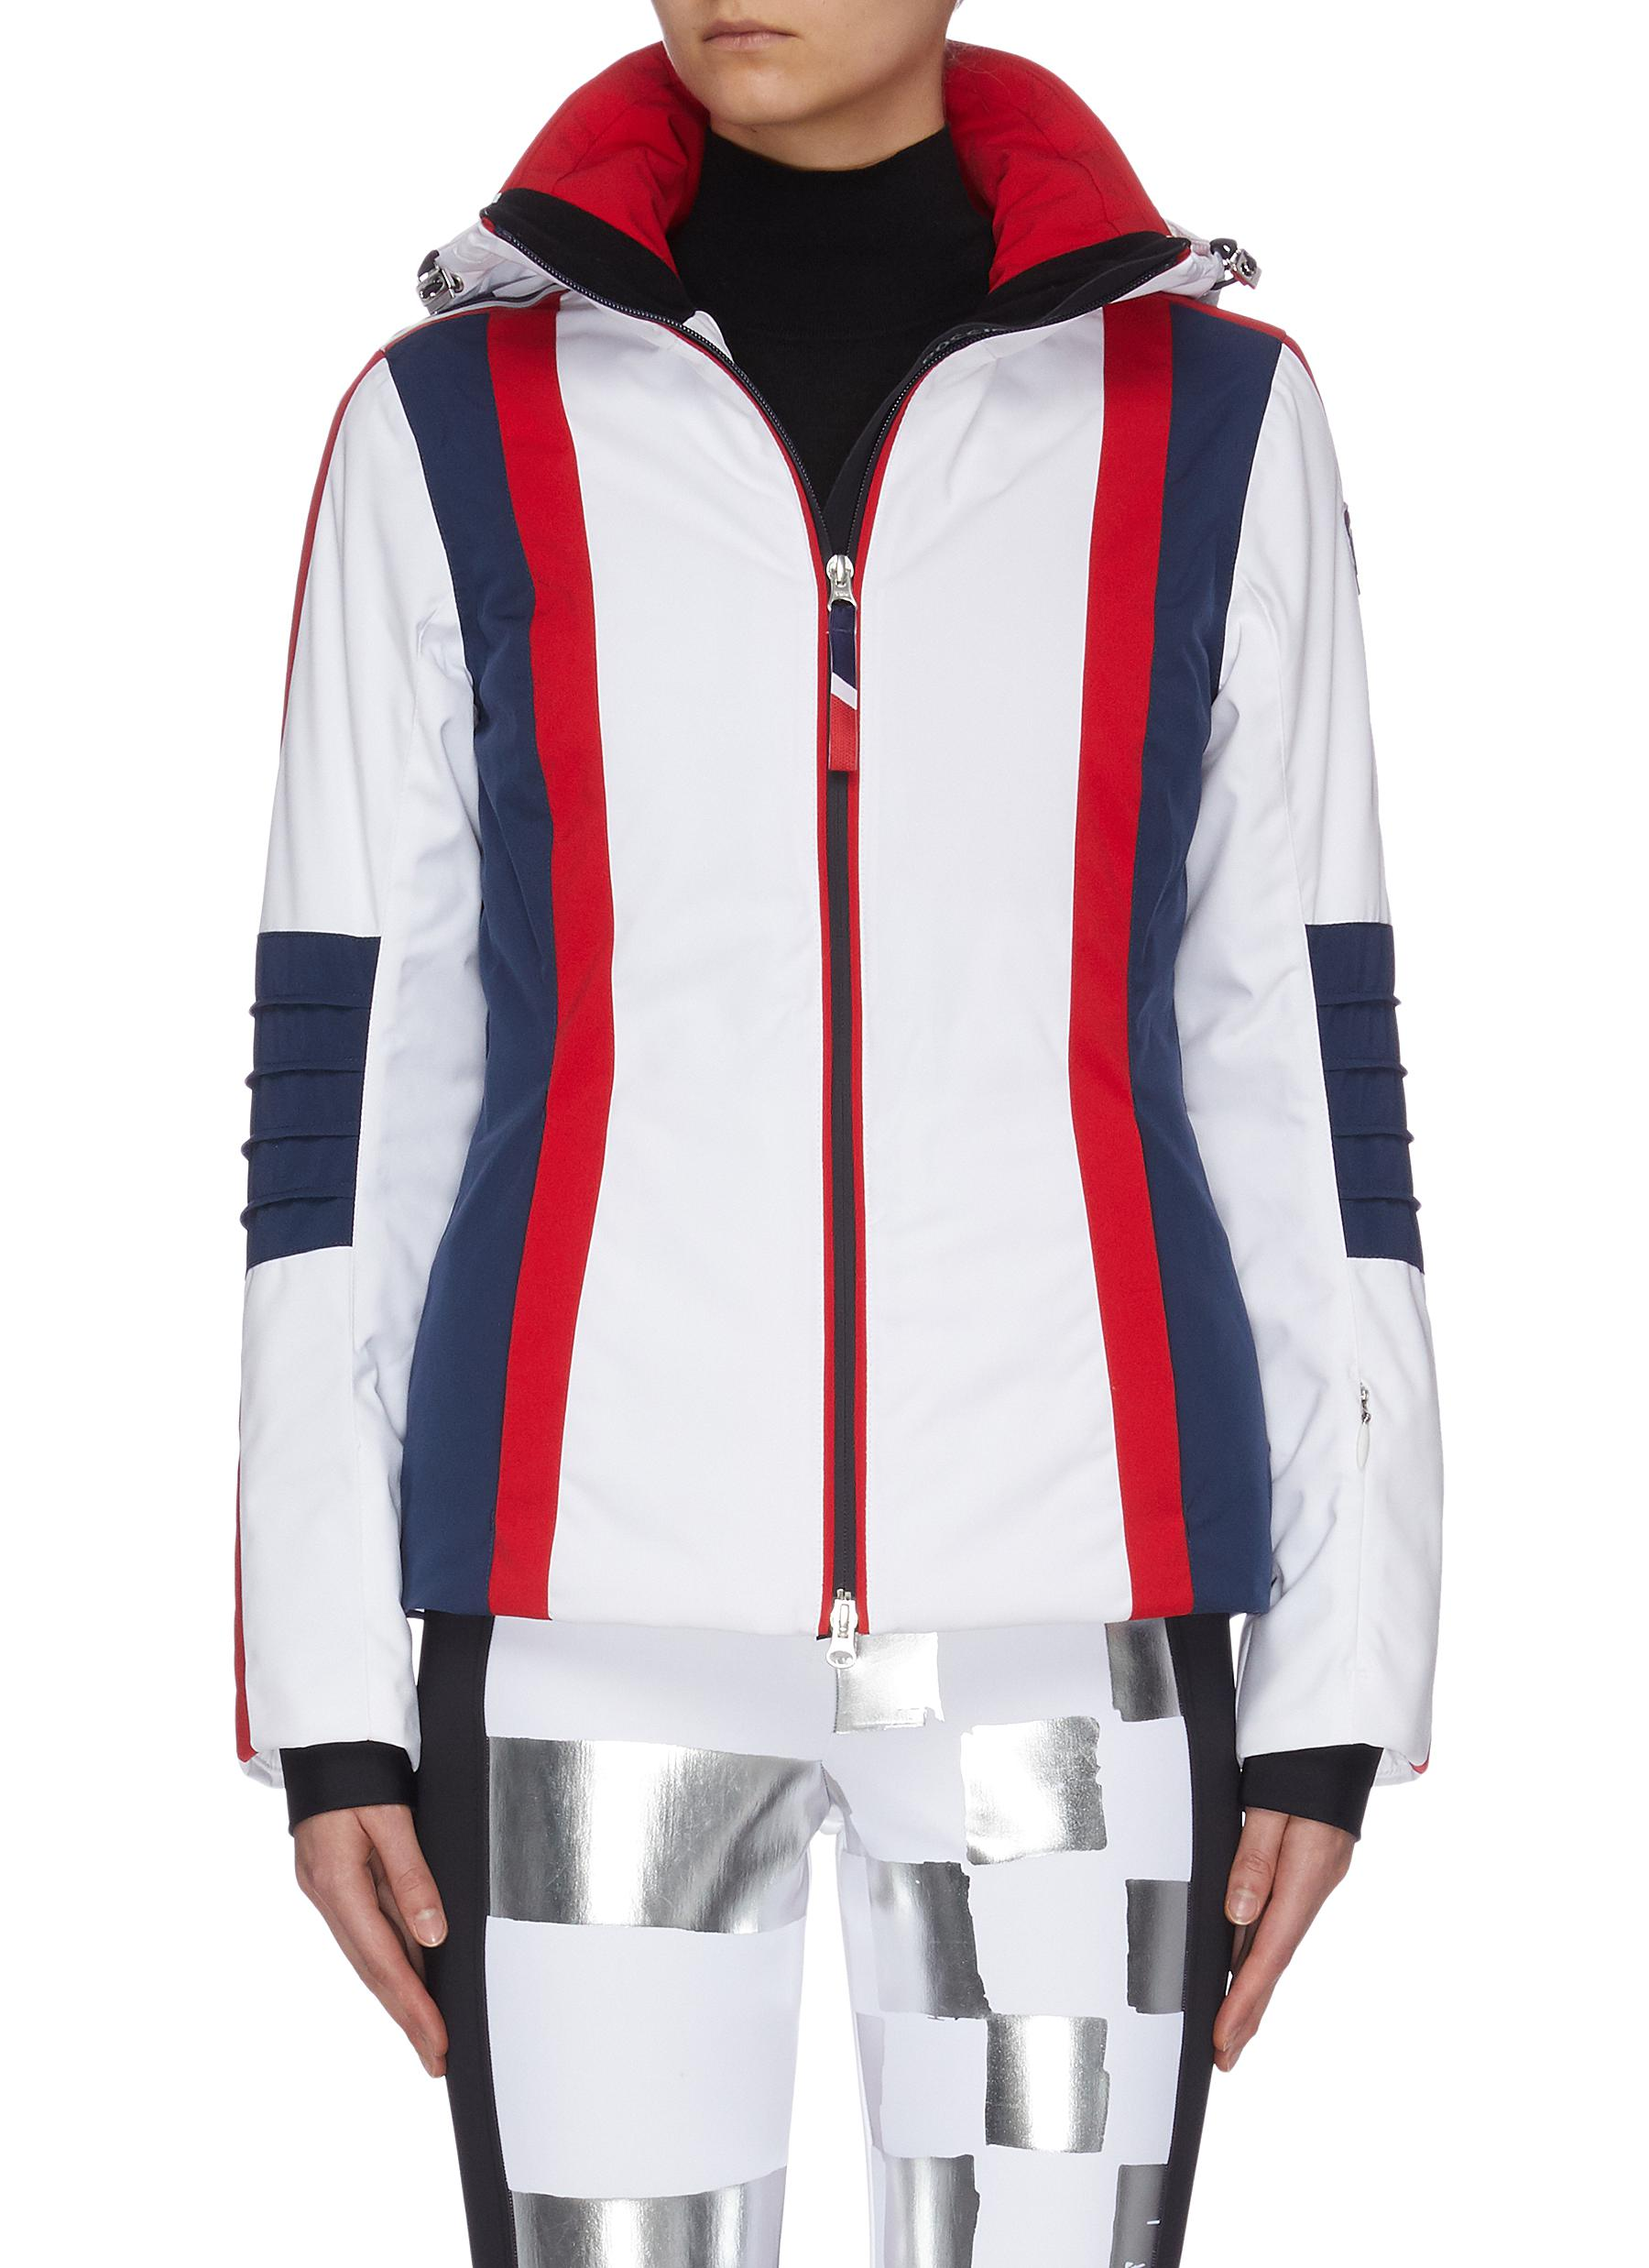 Buy Rossignol Jackets 'Palmares' colourblock ski jacket